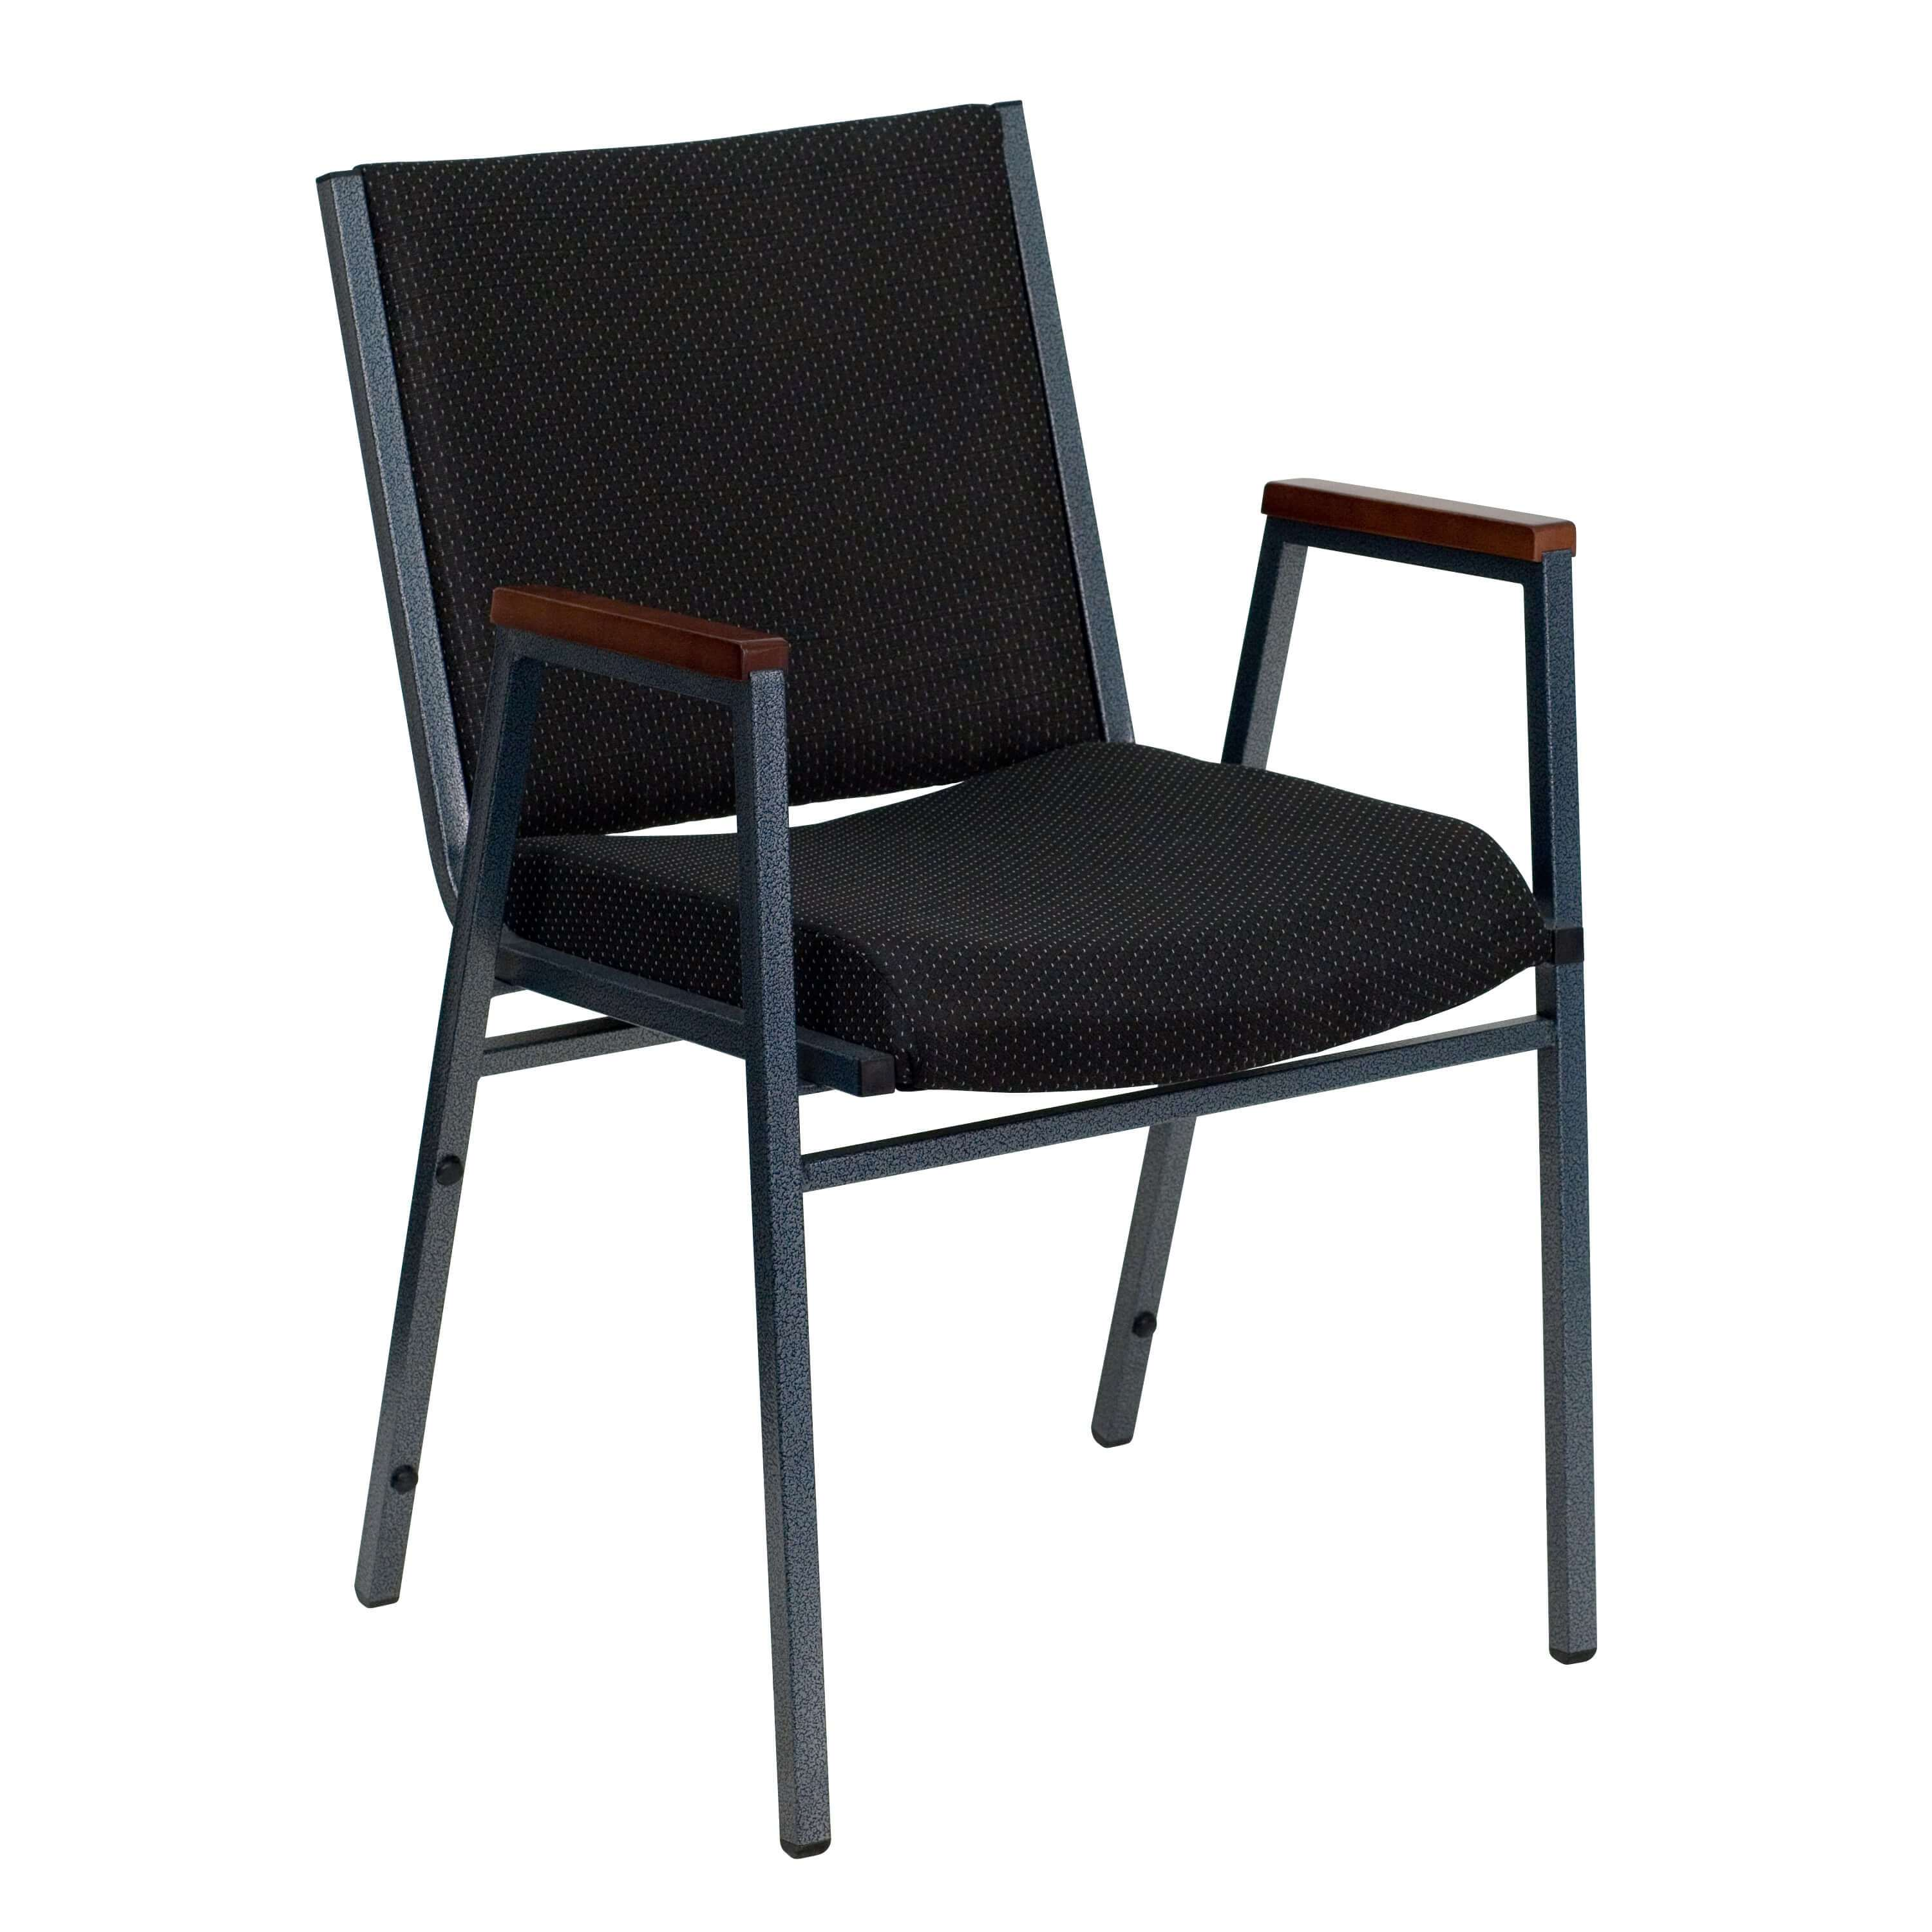 Stackable chairs CUB XU 60154 BK GG FLA